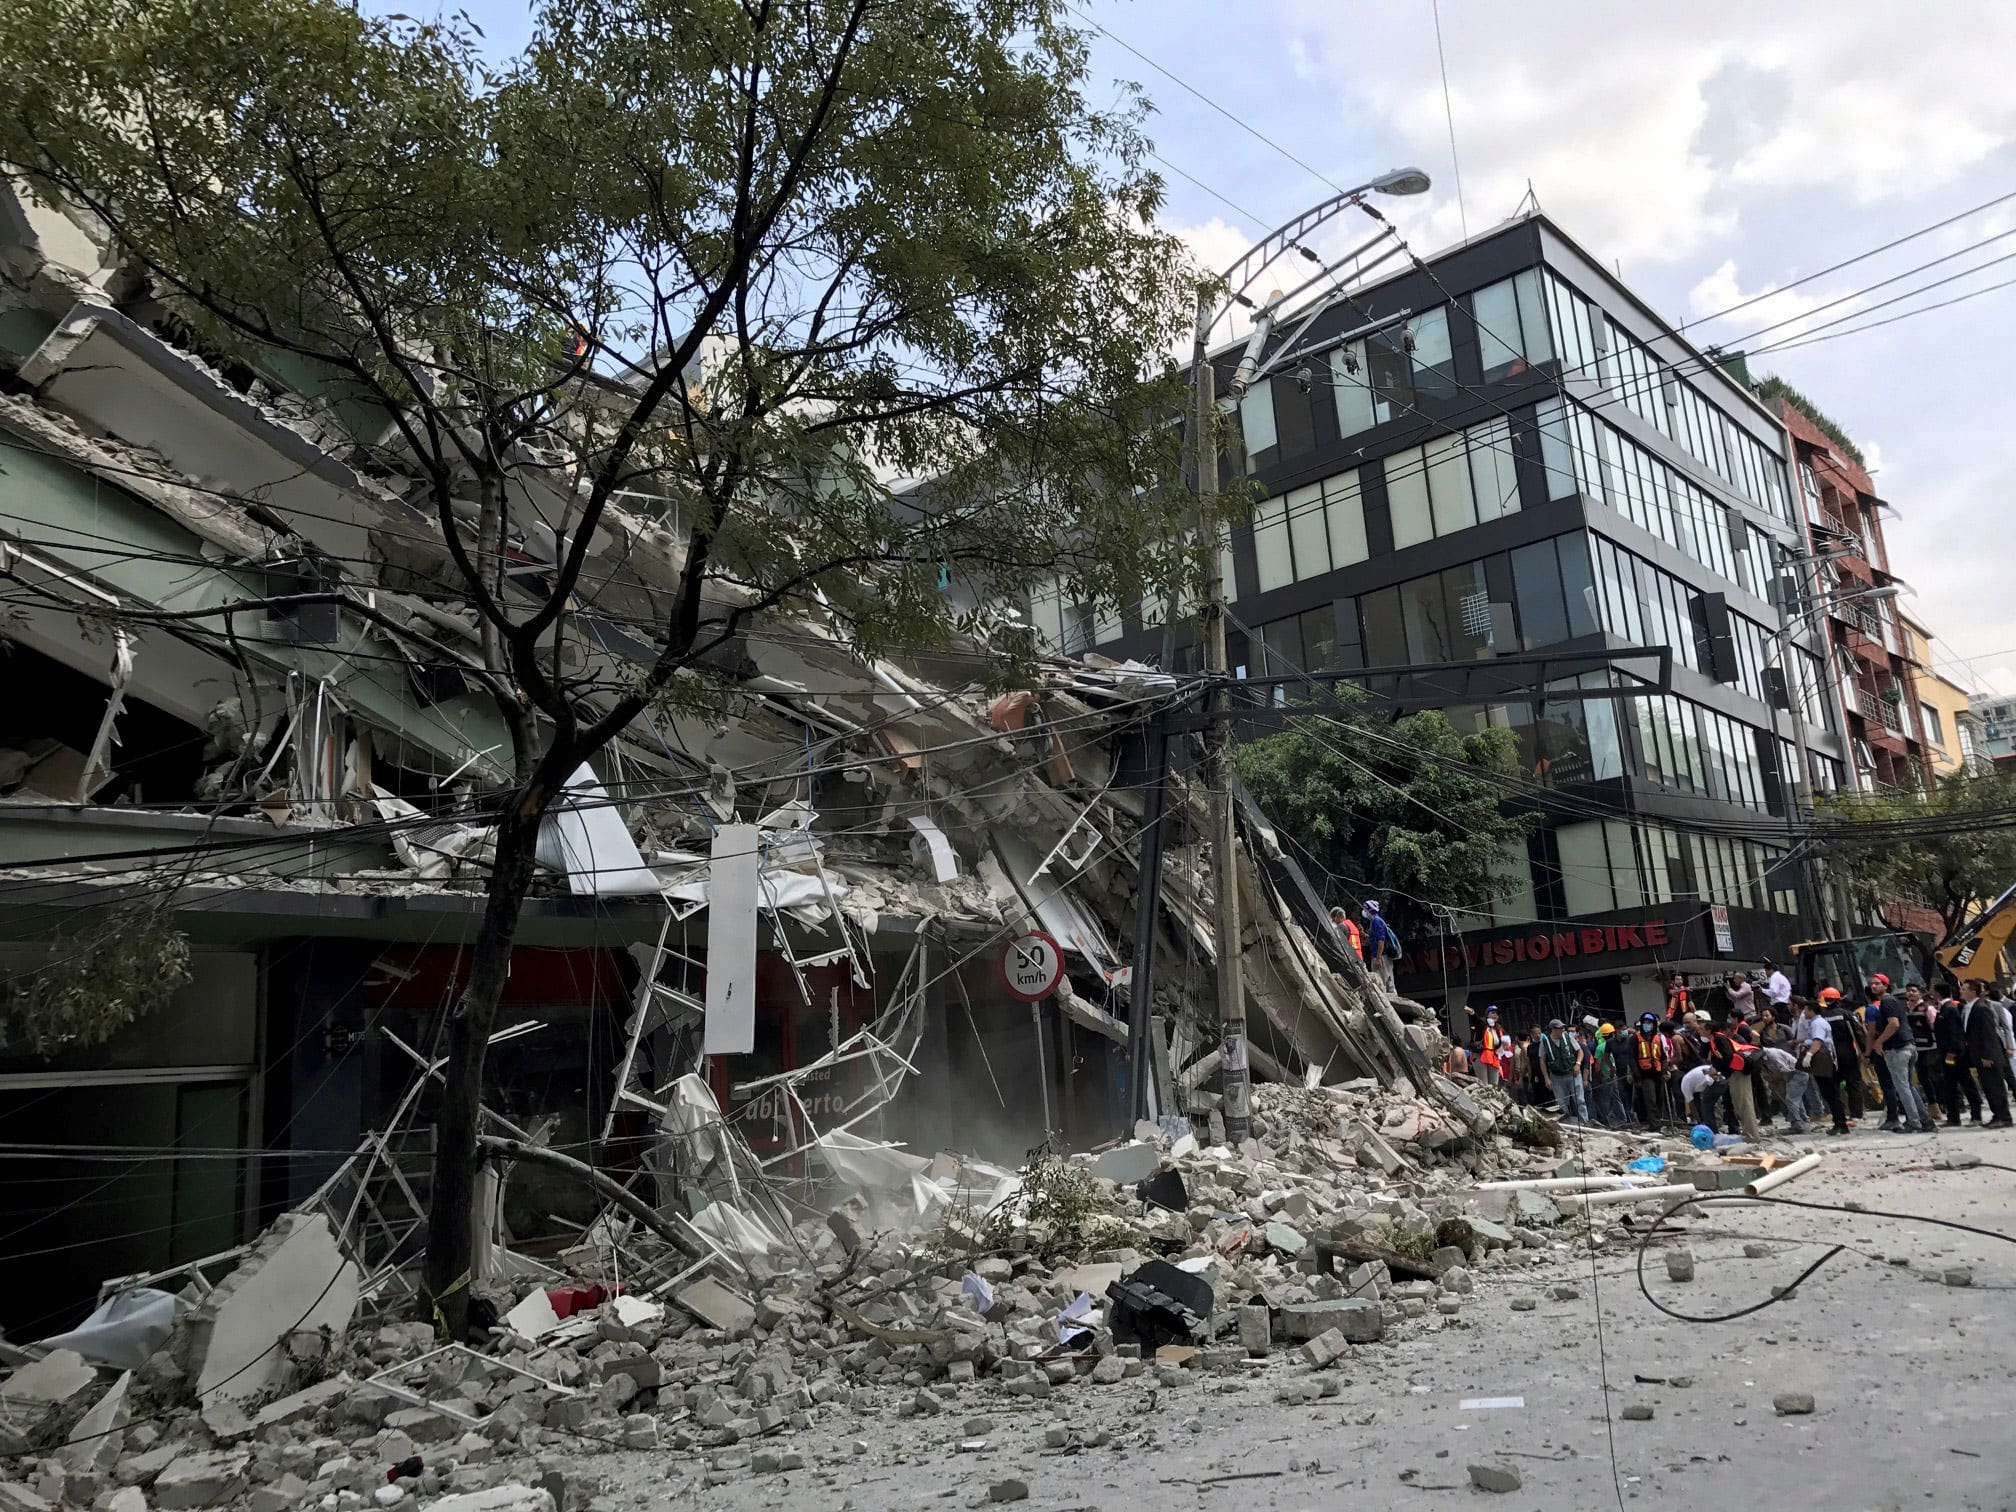 A collapsed building is seen after an earthquake hit in Mexico City, Mexico